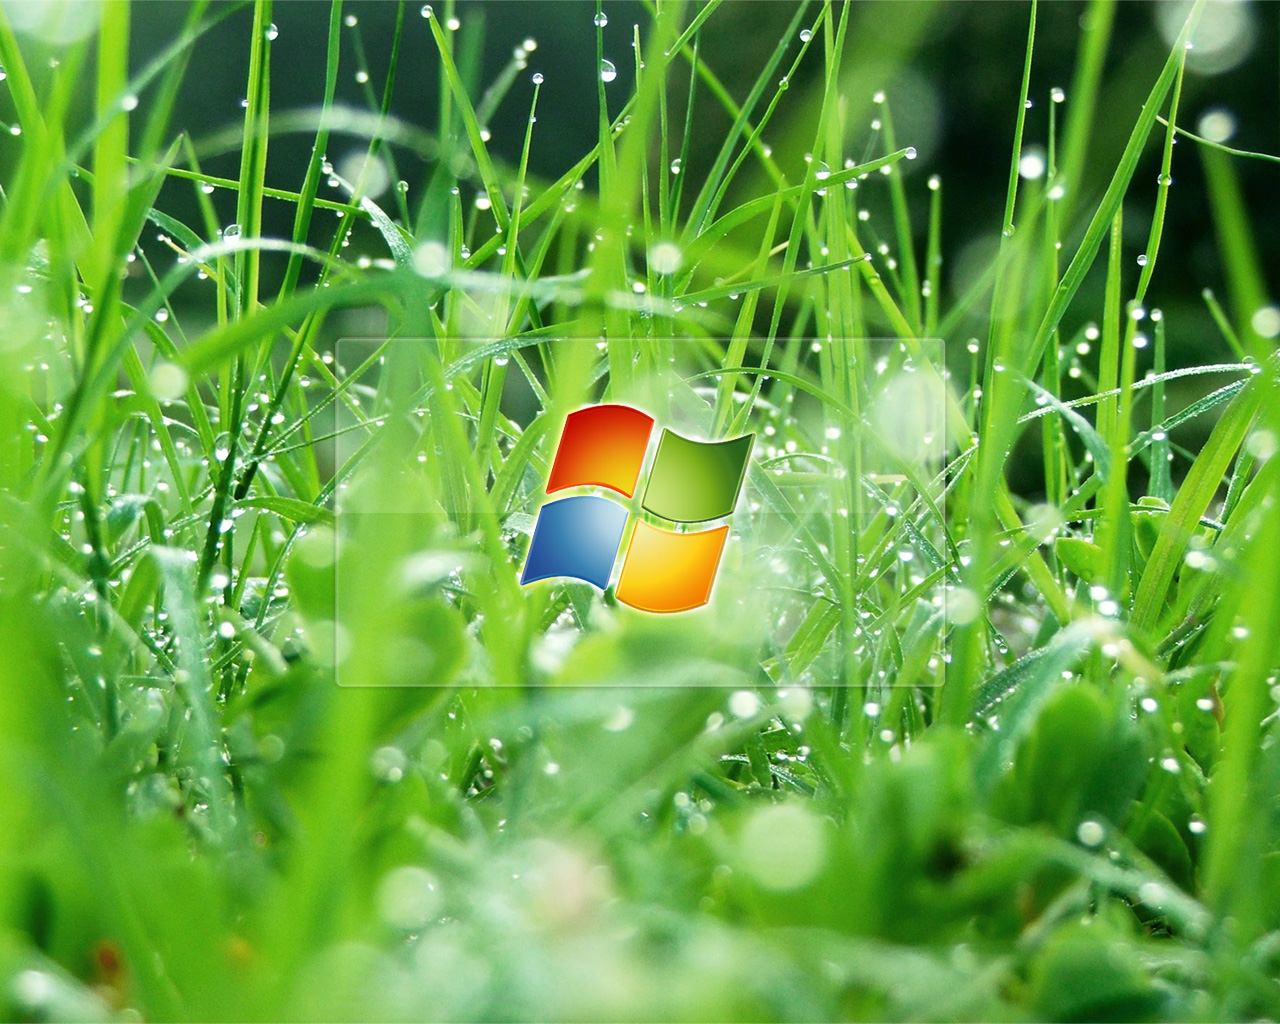 Windows Glass Effect Wallpapers HD Wallpapers 1280x1024